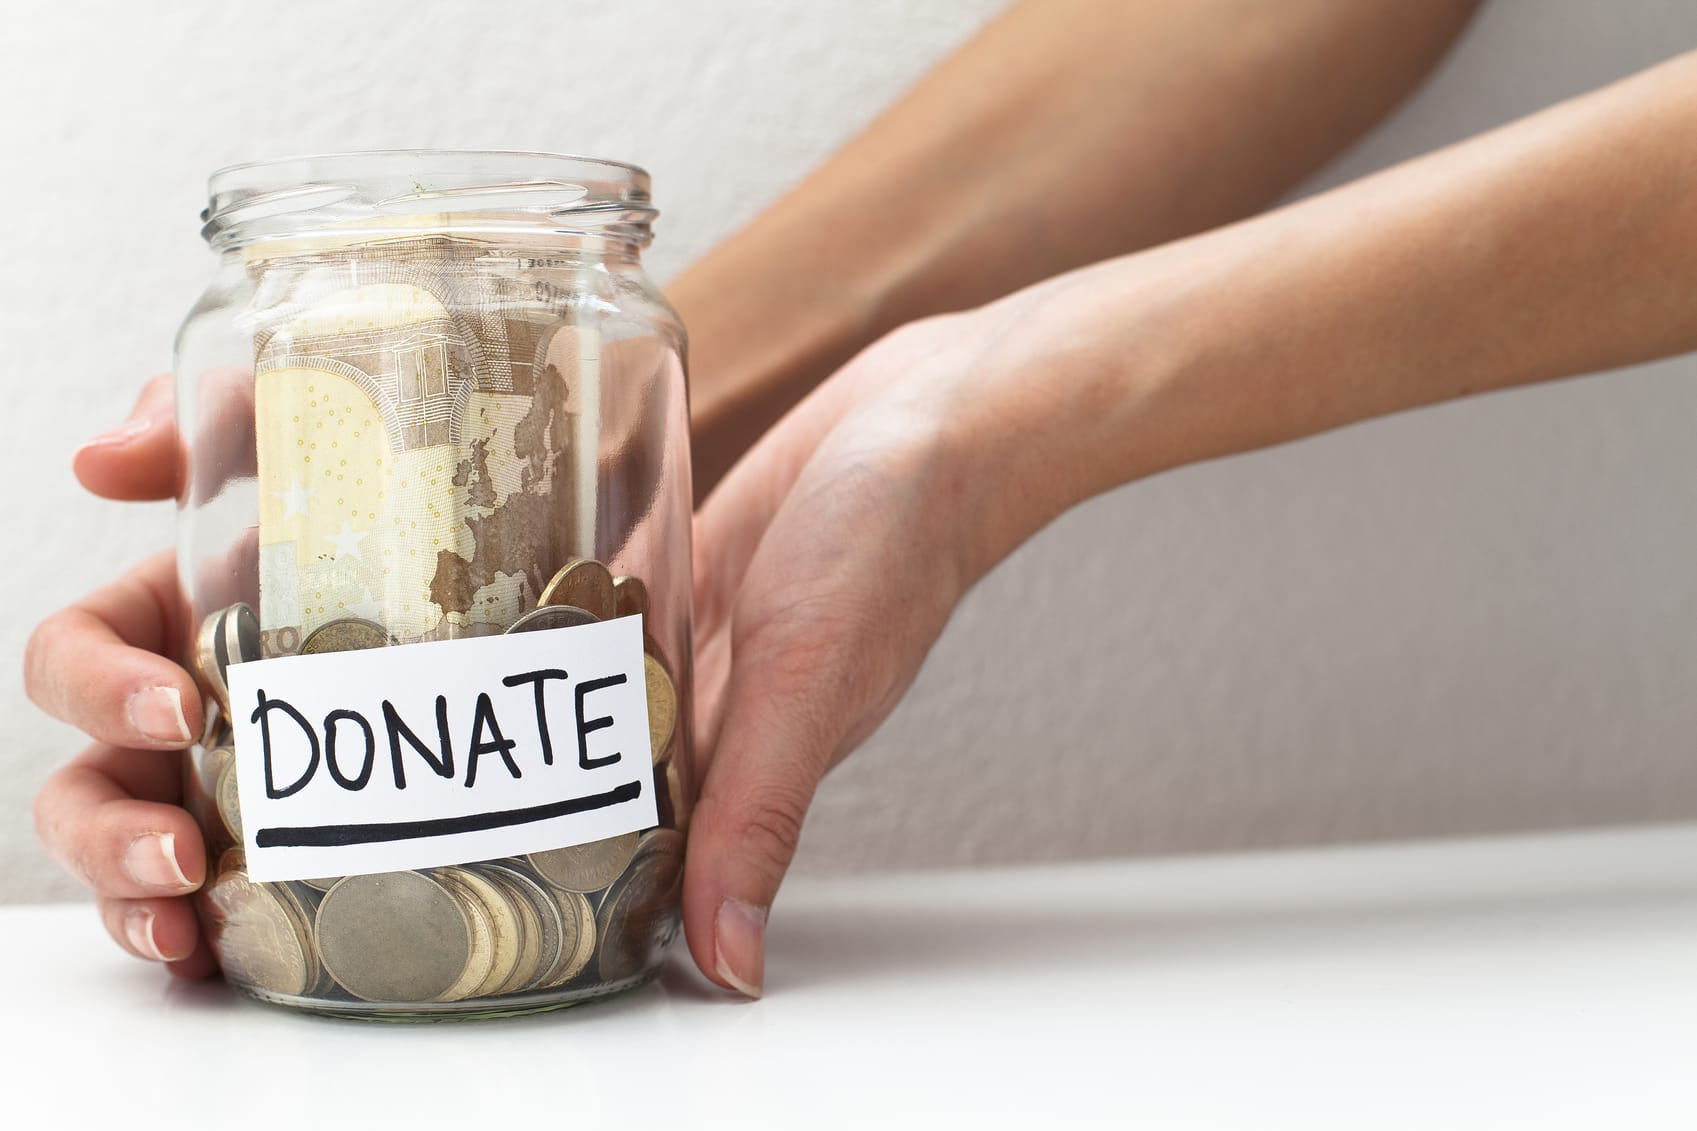 Donate Donation Money Jar